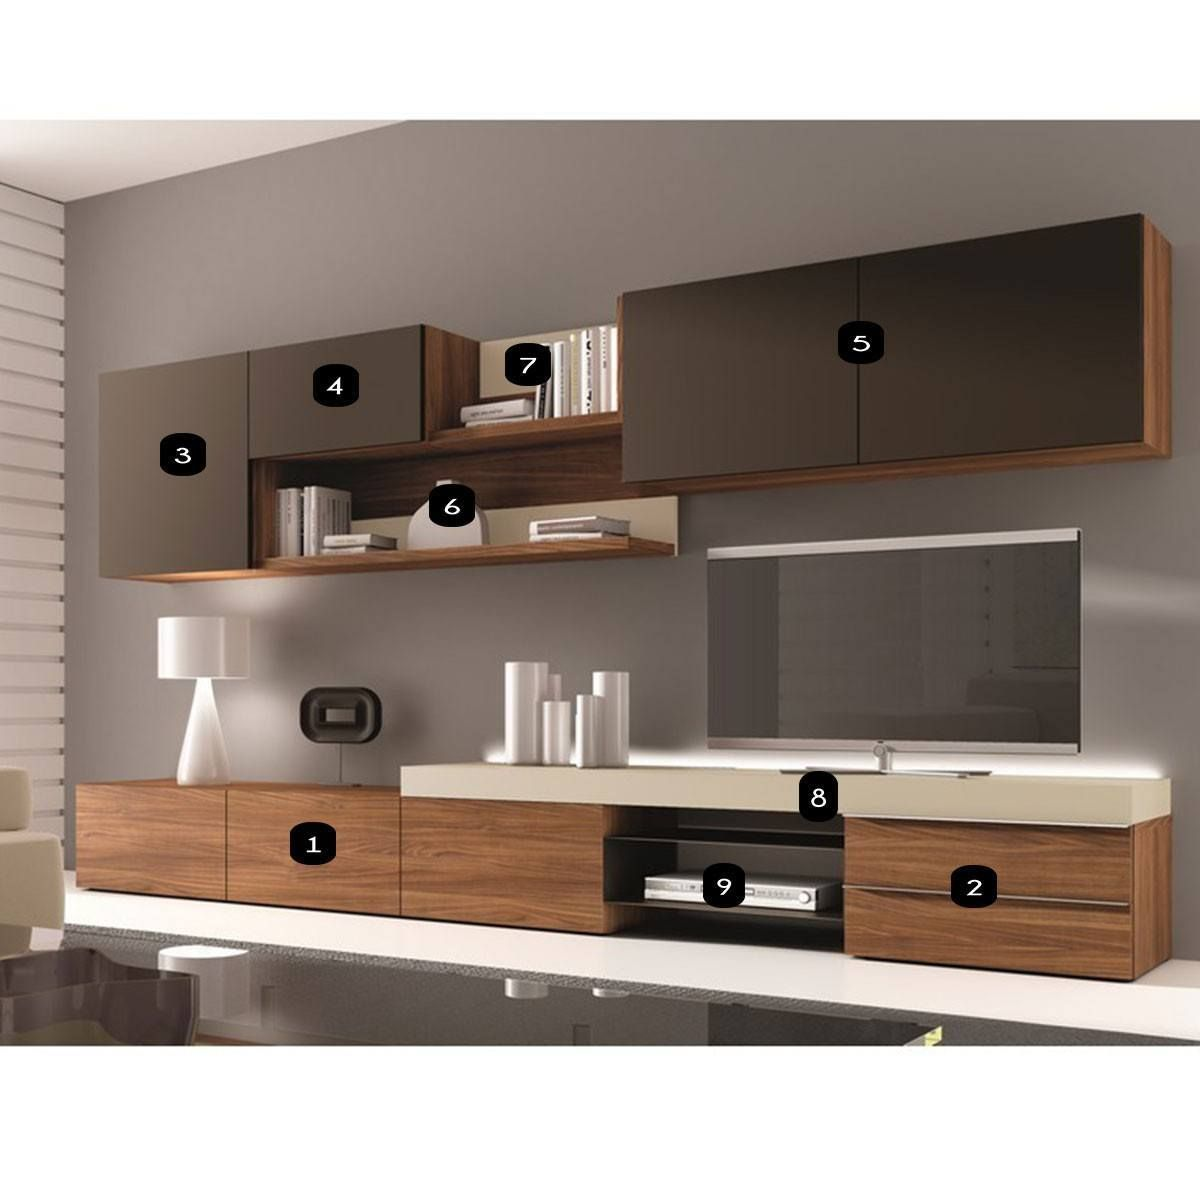 Meuble Mural Tv Laqu Design Osane Atylia Biblioth Que  # Atylia Meuble